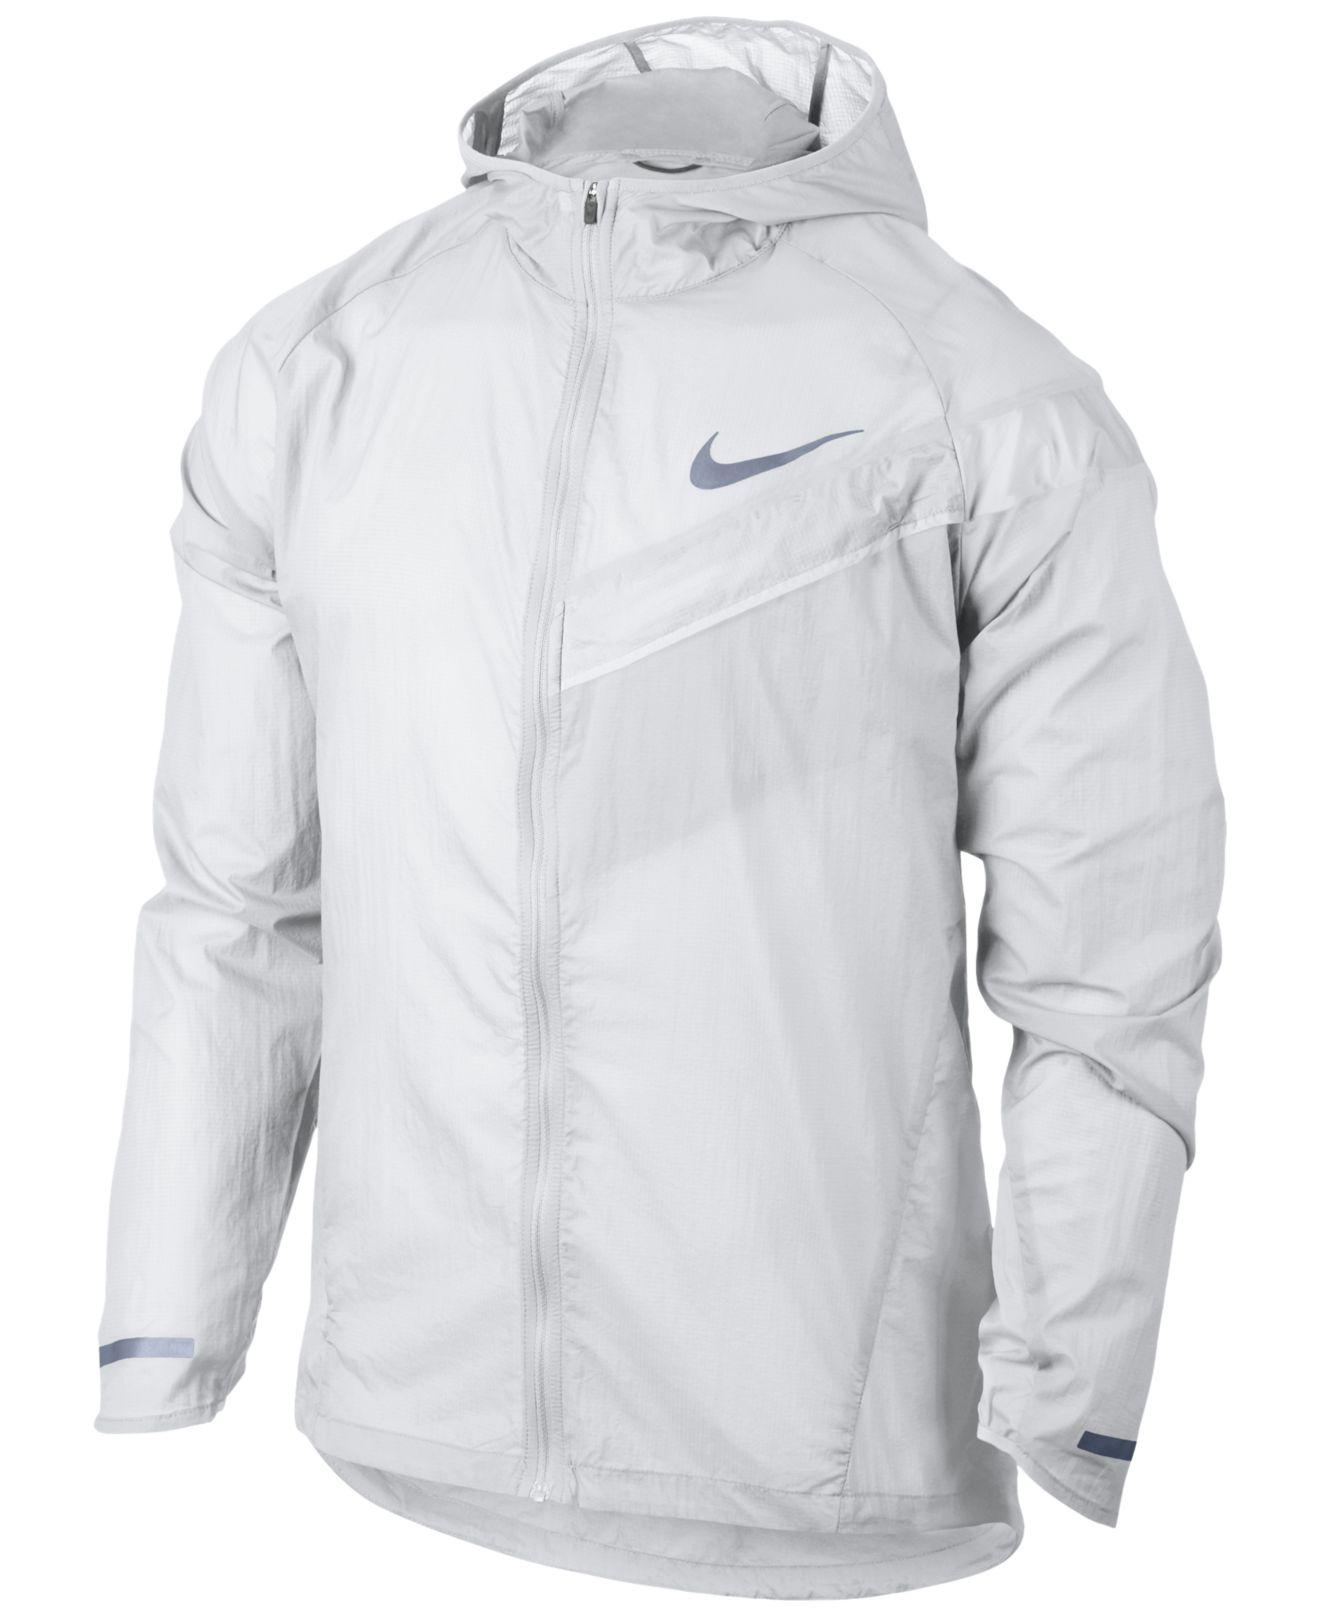 be9c3469a4ad Lyst - Nike Men s Impossibly Light Running Jacket in White for Men